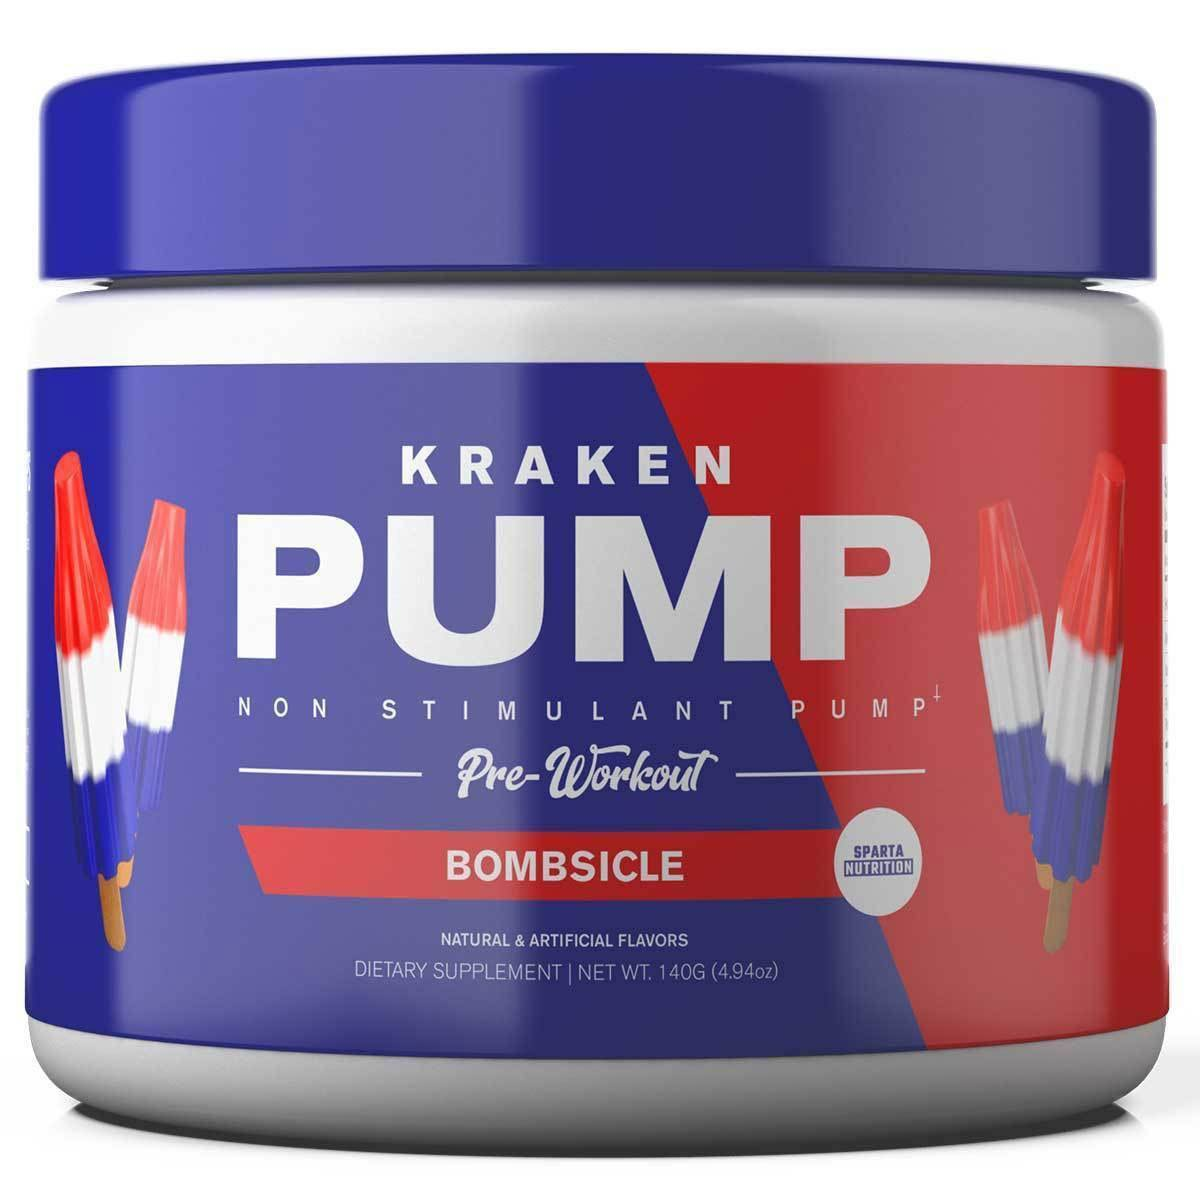 Sparta Nutrition Kraken Pump 40 Servings Pre-workout Sparta Nutrition bombsicle  (1059317612587)